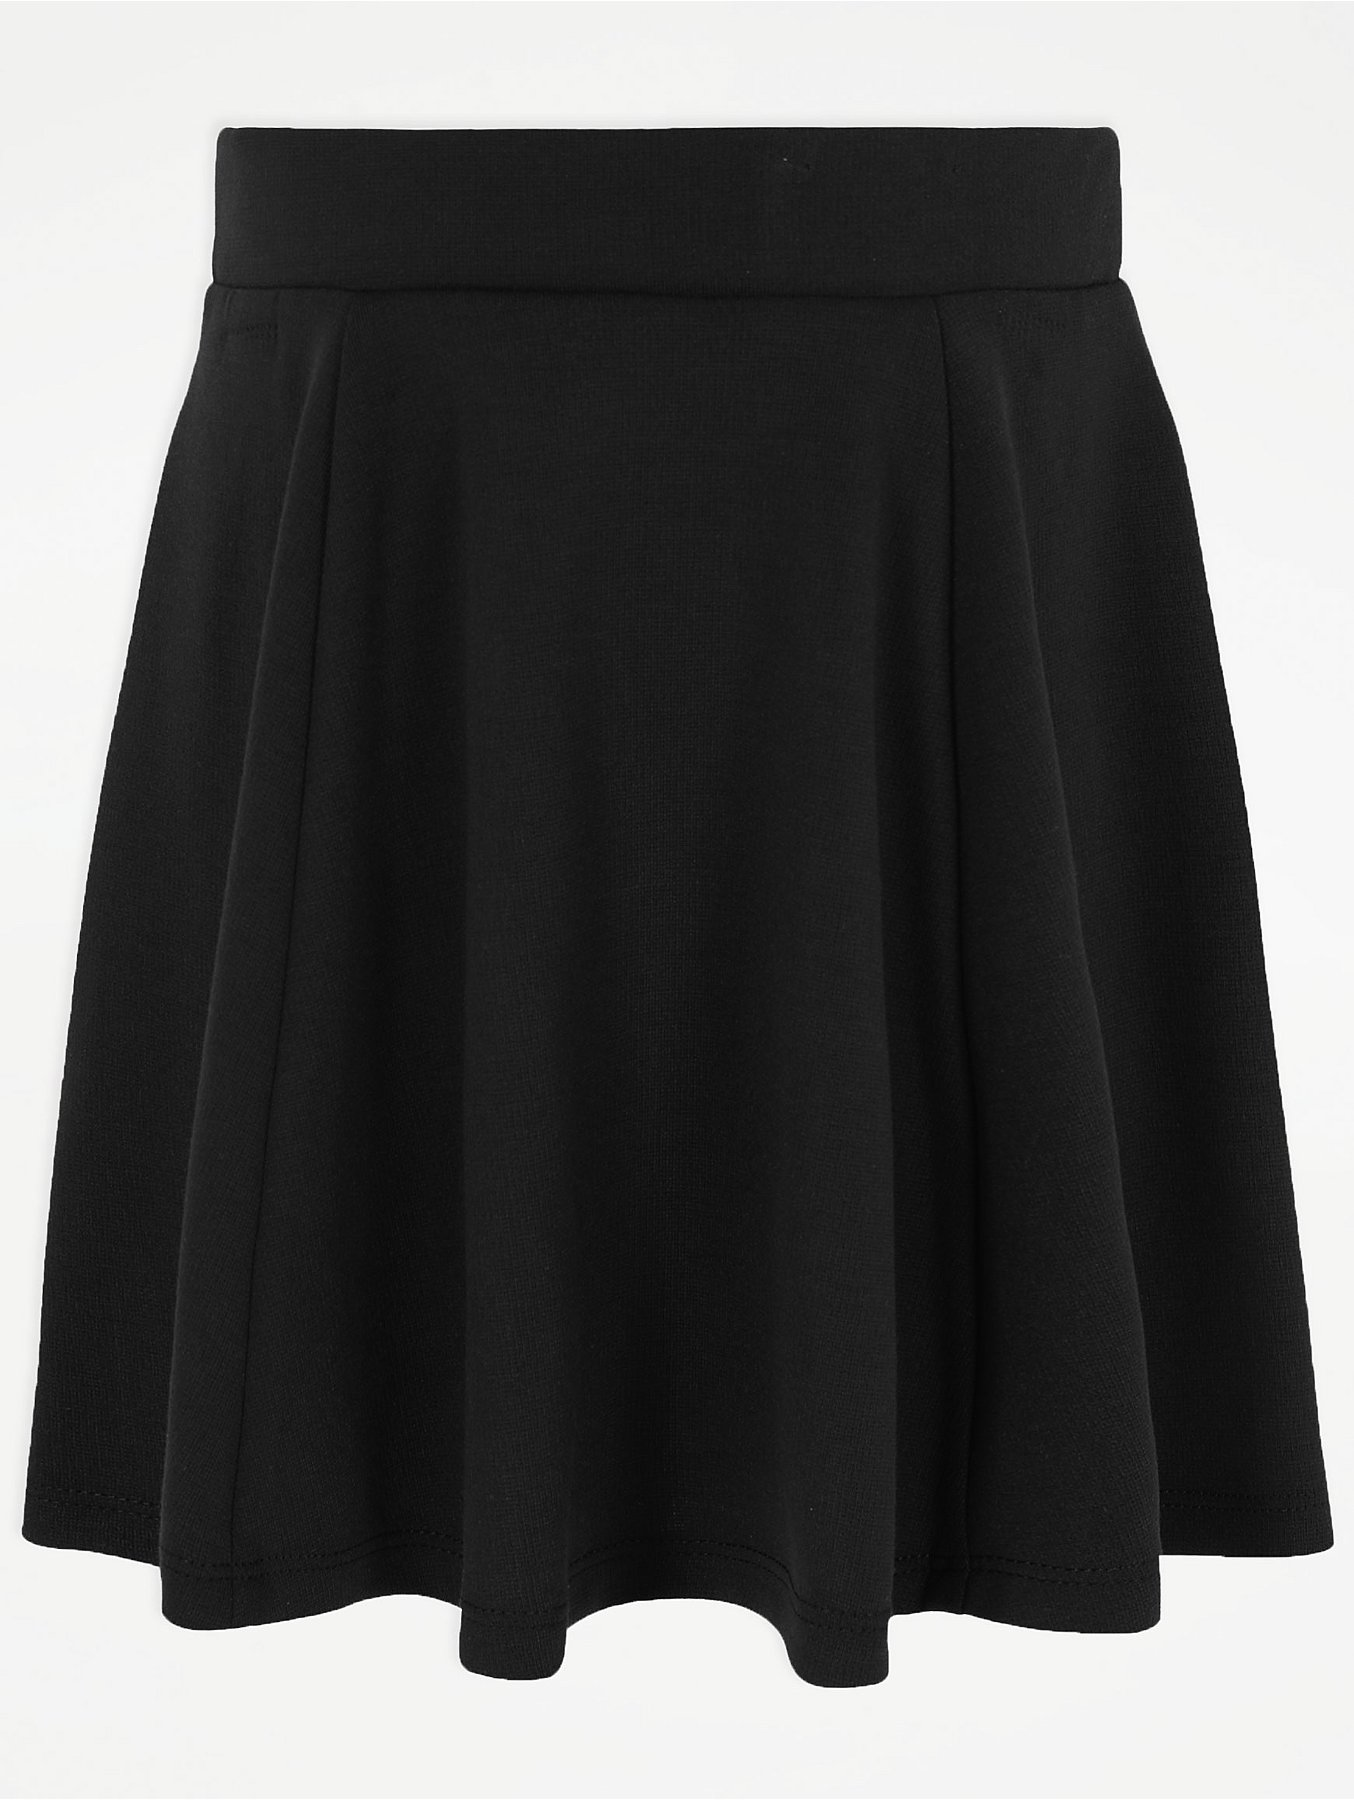 db478bc843 Senior Girls Black Jersey School Skater Skirt | School | George